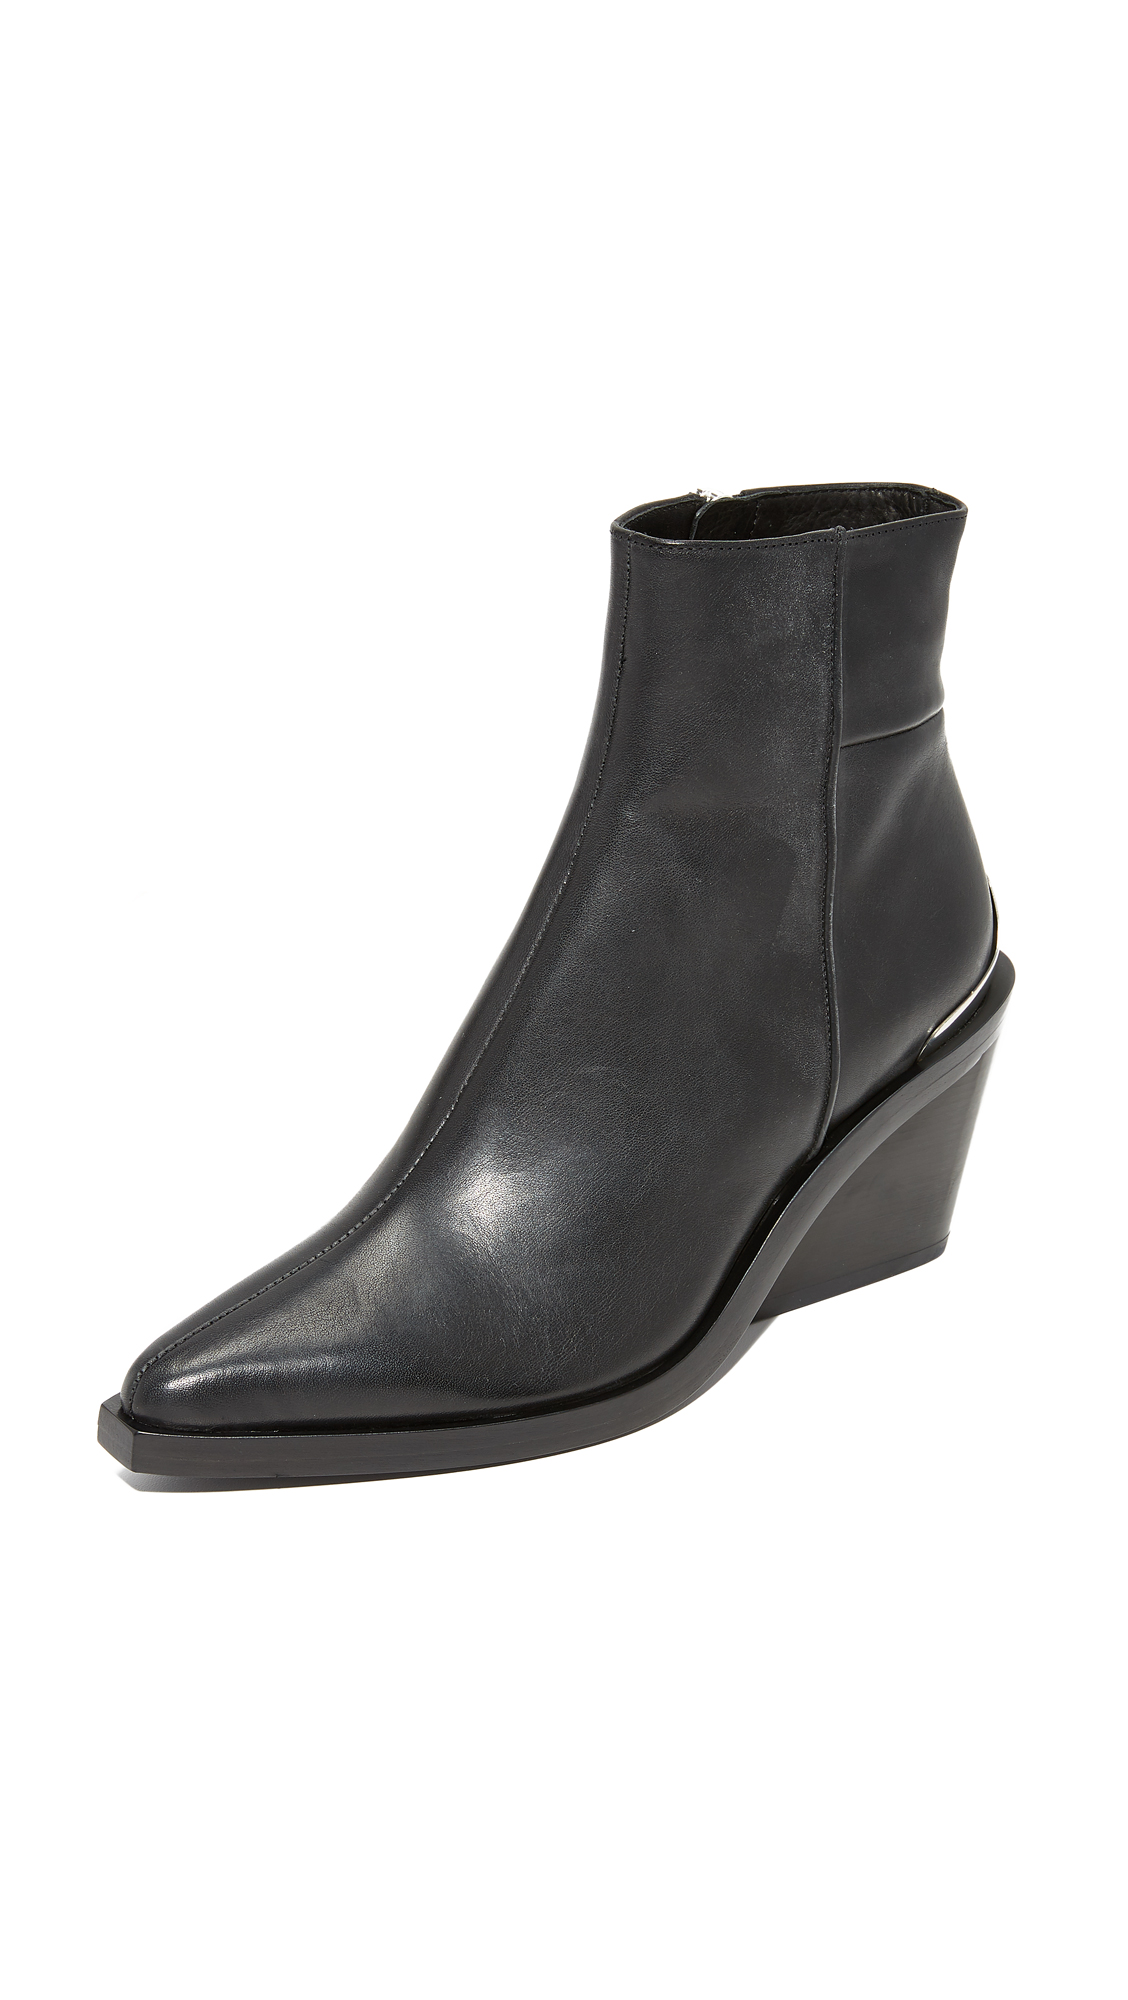 Rag & Bone Santiago Wedge Booties - Black